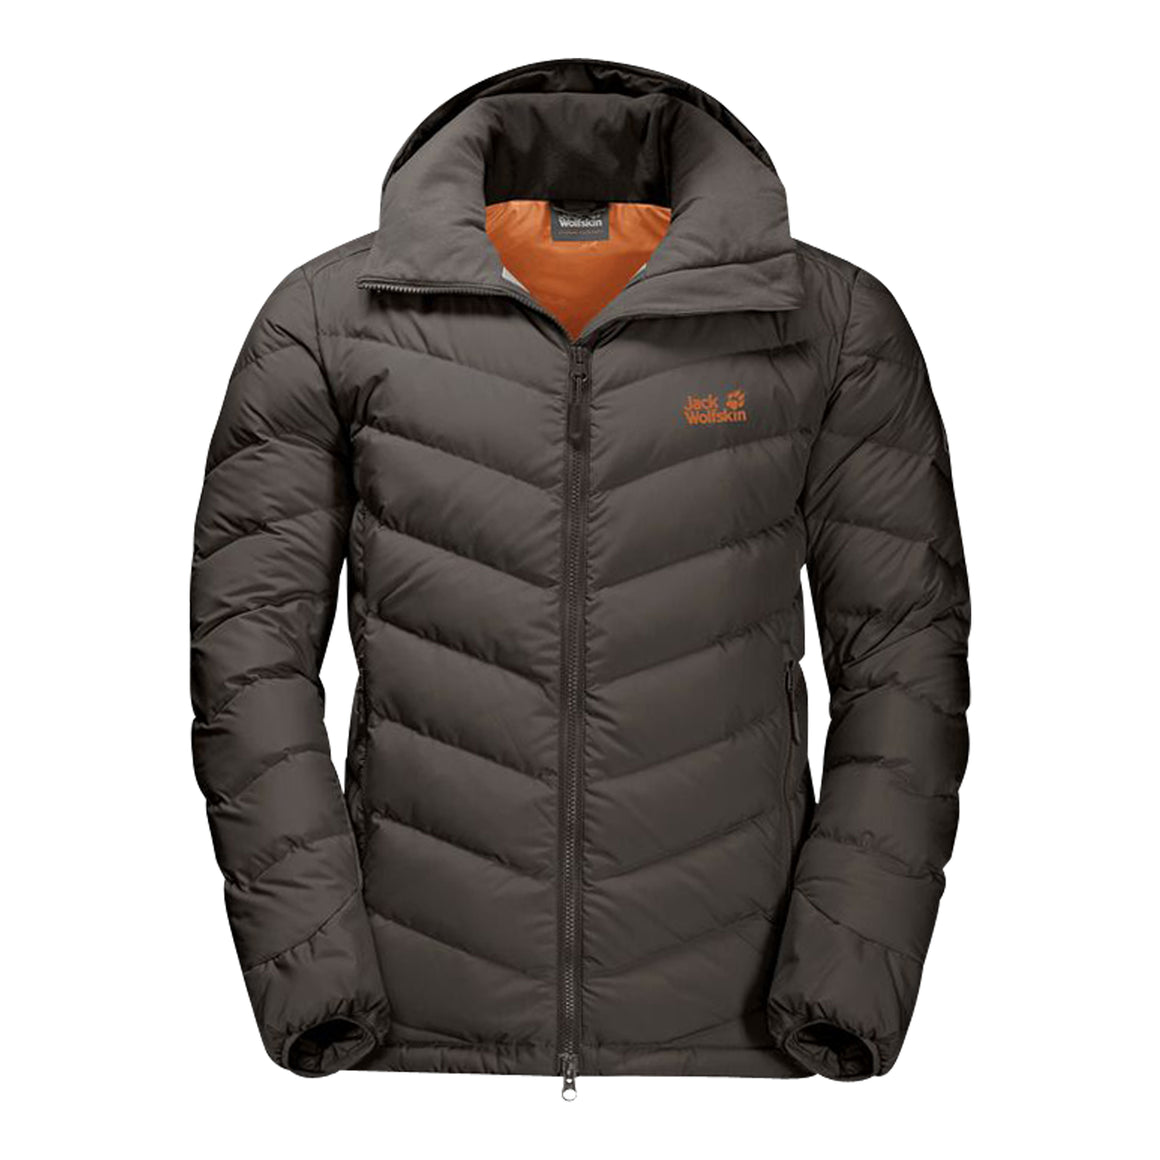 Fairmount Quilted Jacket for Men in Brownstone